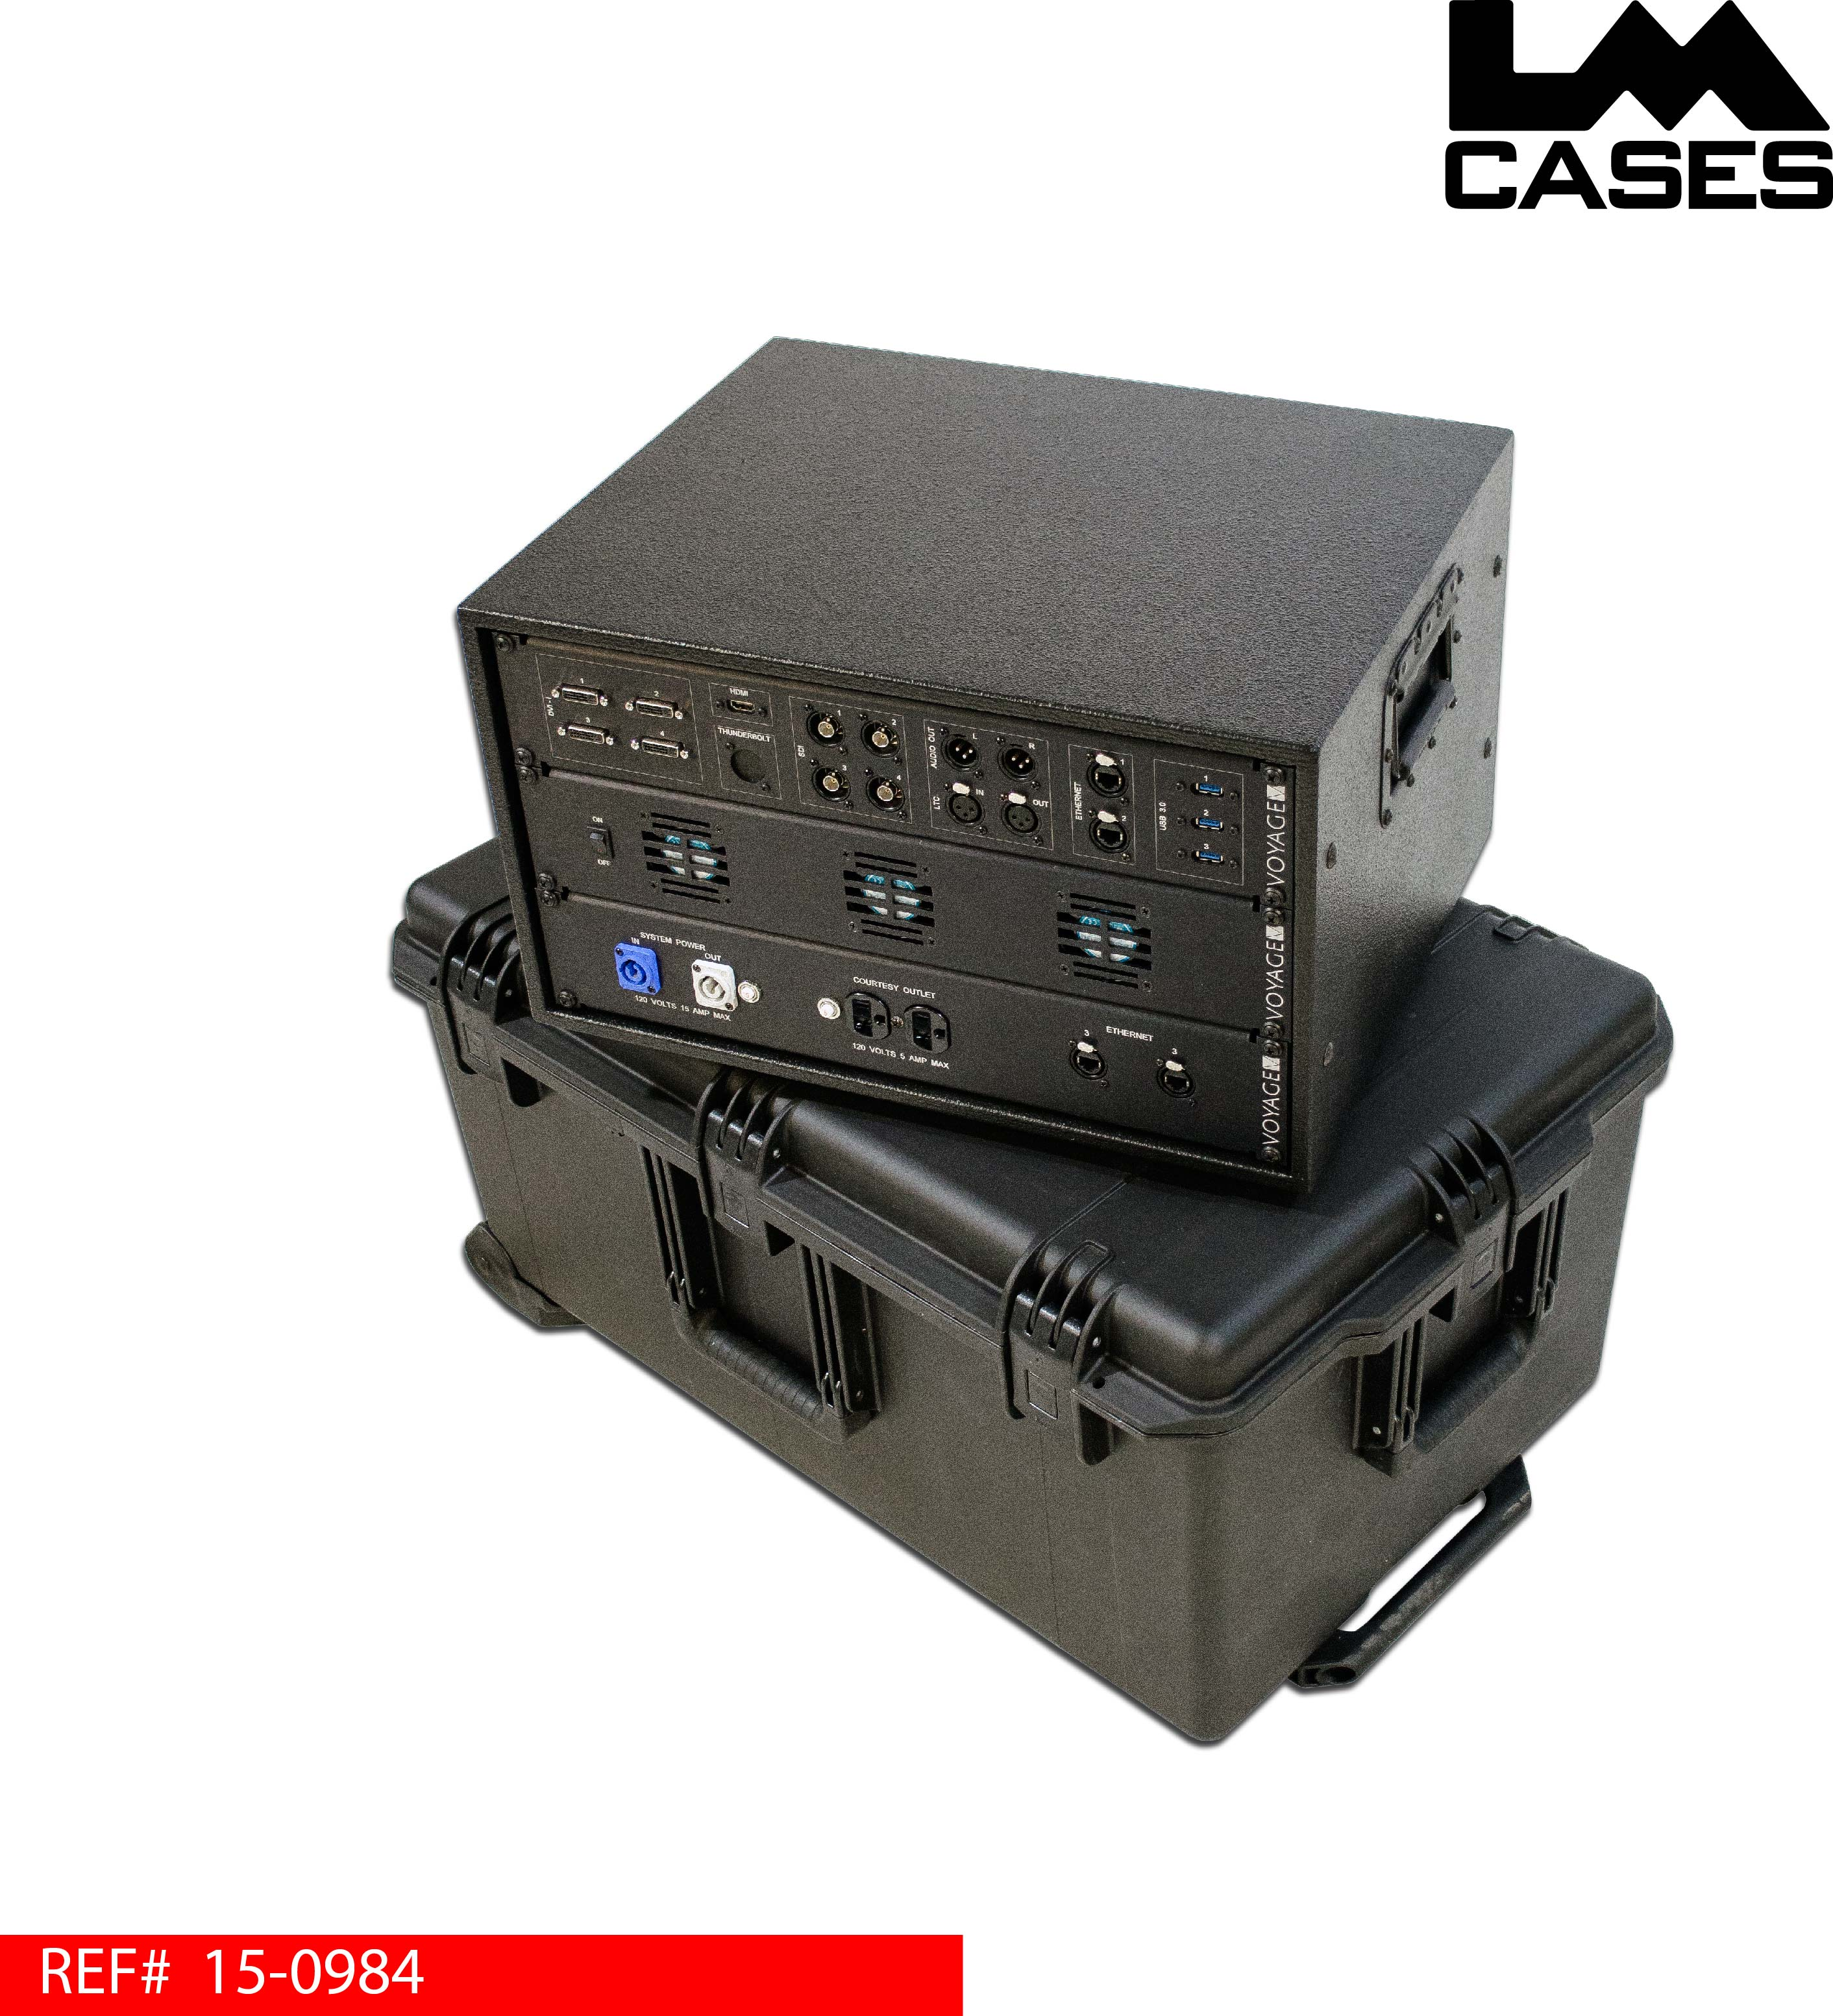 Media Rack Lm Cases Products